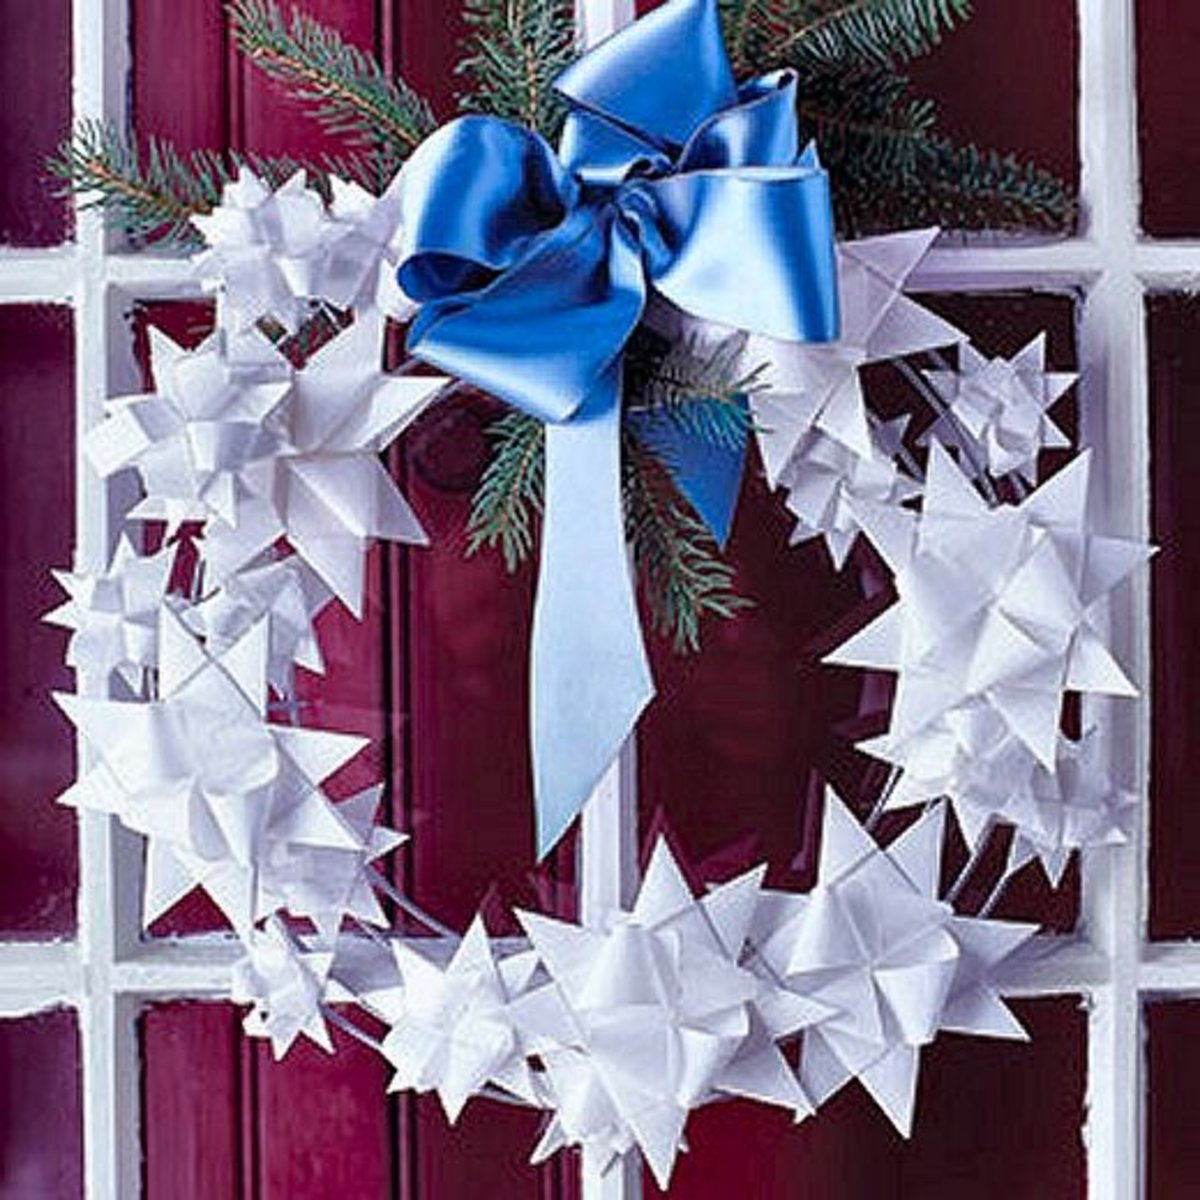 Origami star Christmas wreath.